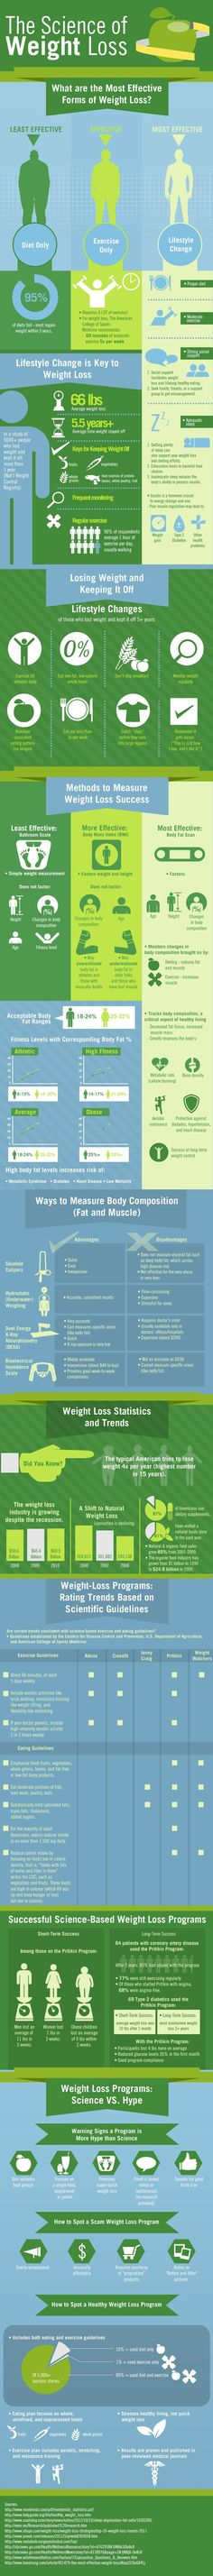 science-of-weight-loss.jpg (800×9685)